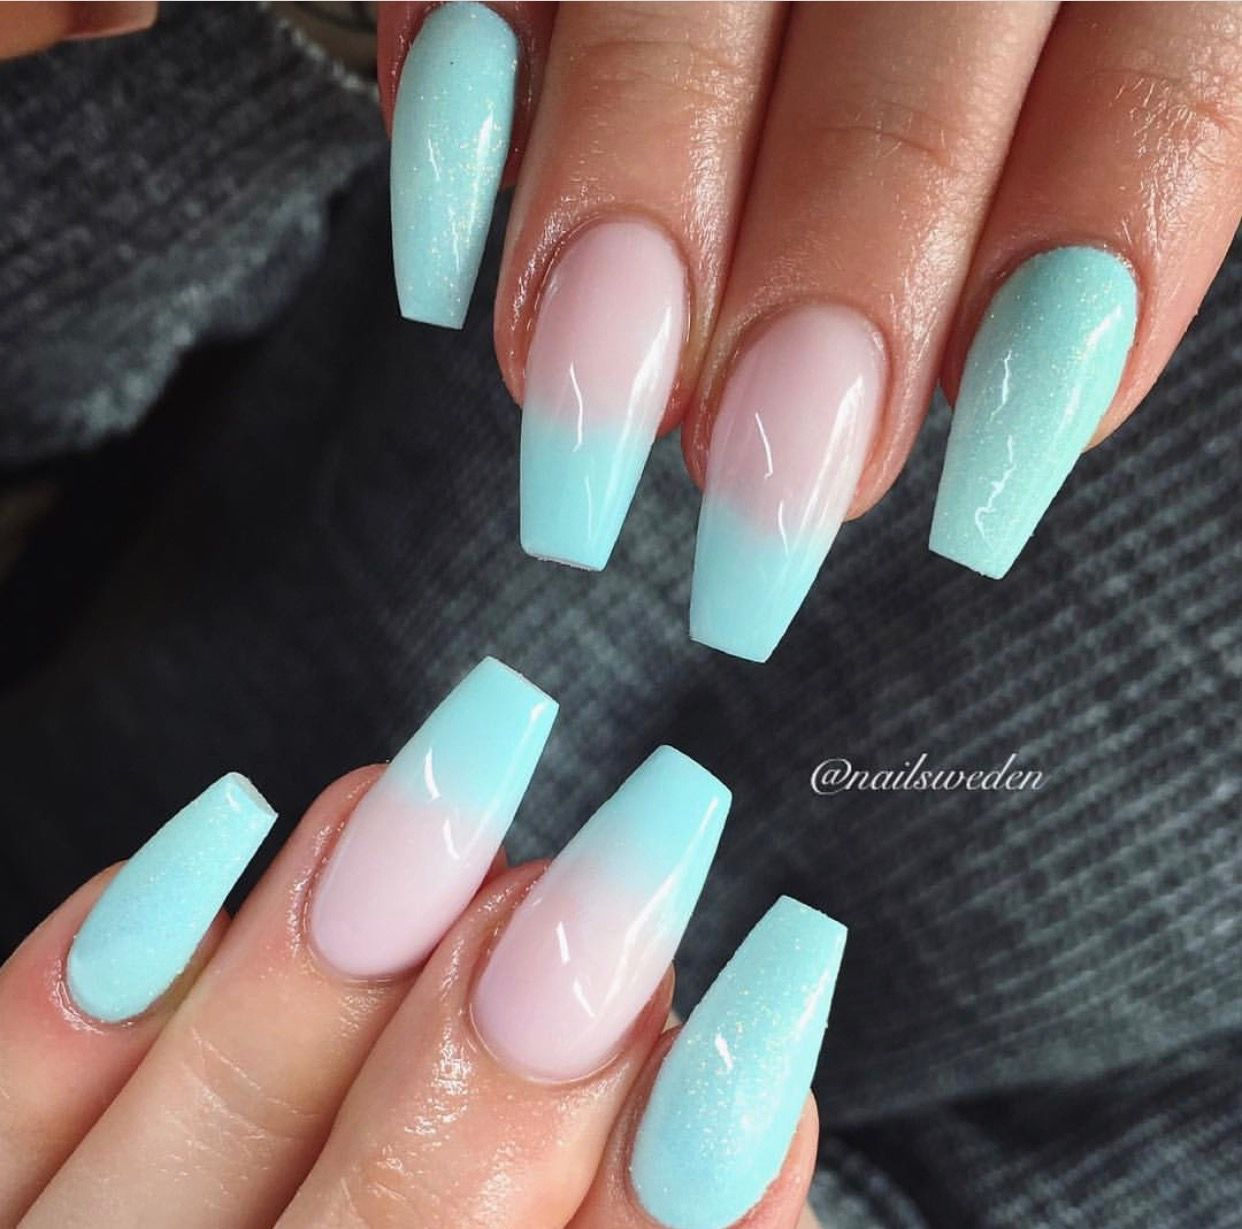 Pin By Jennifer Duncan On Nails In 2020 With Images Coffin Nails Designs Summer Acrylic Nails Pretty Acrylic Nails